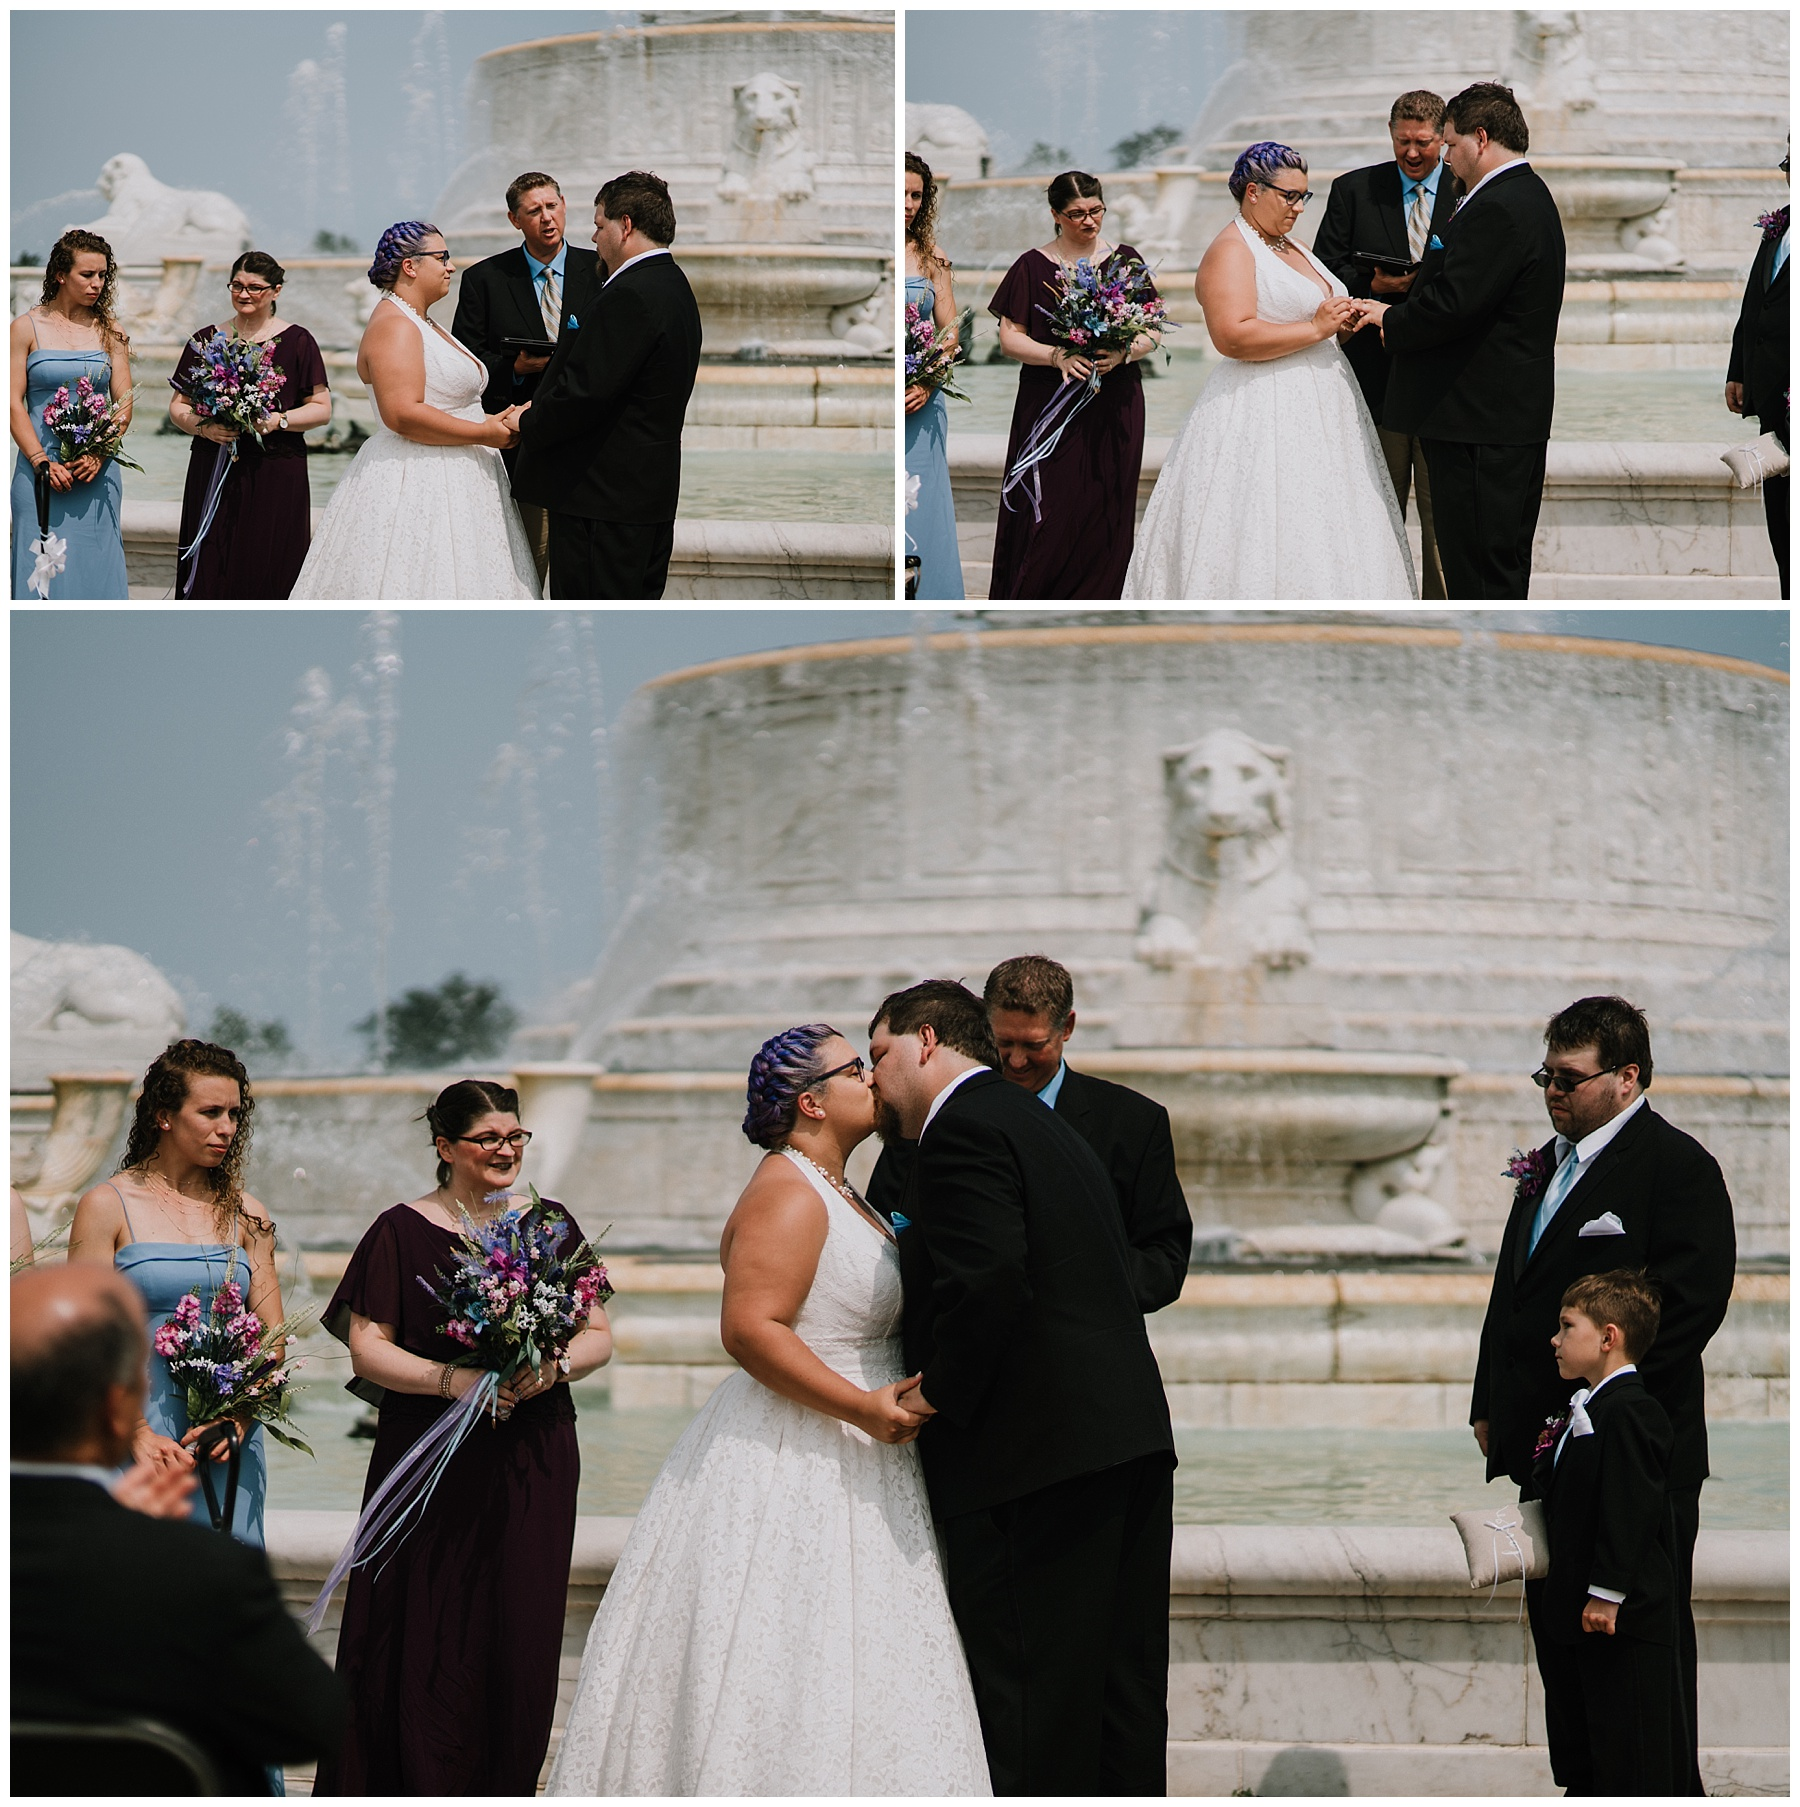 Belle Isle Fountain Wedding